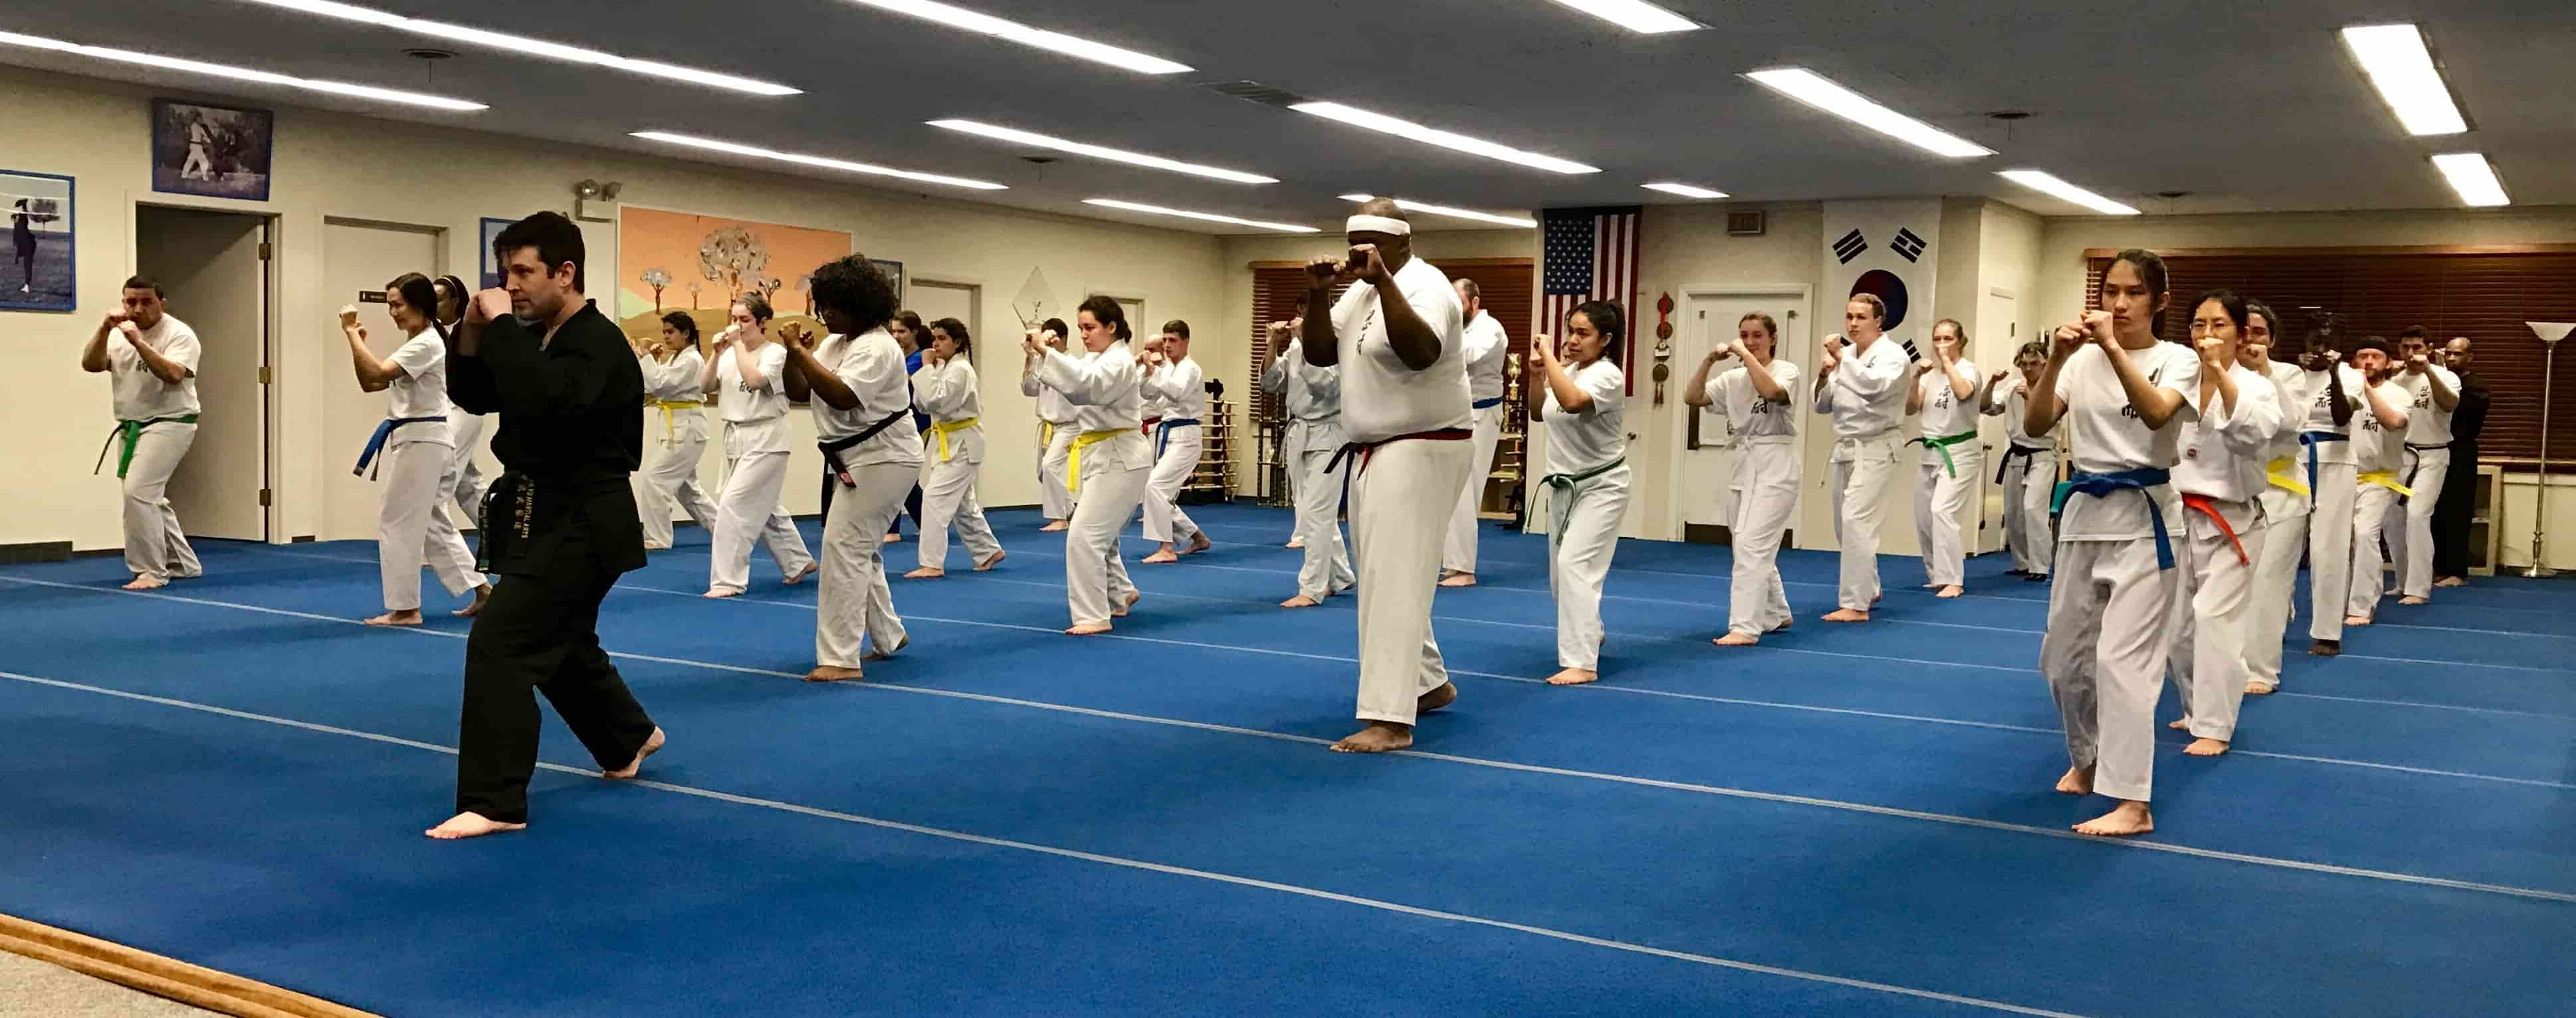 Adult-Teen-Martial-Arts-Program